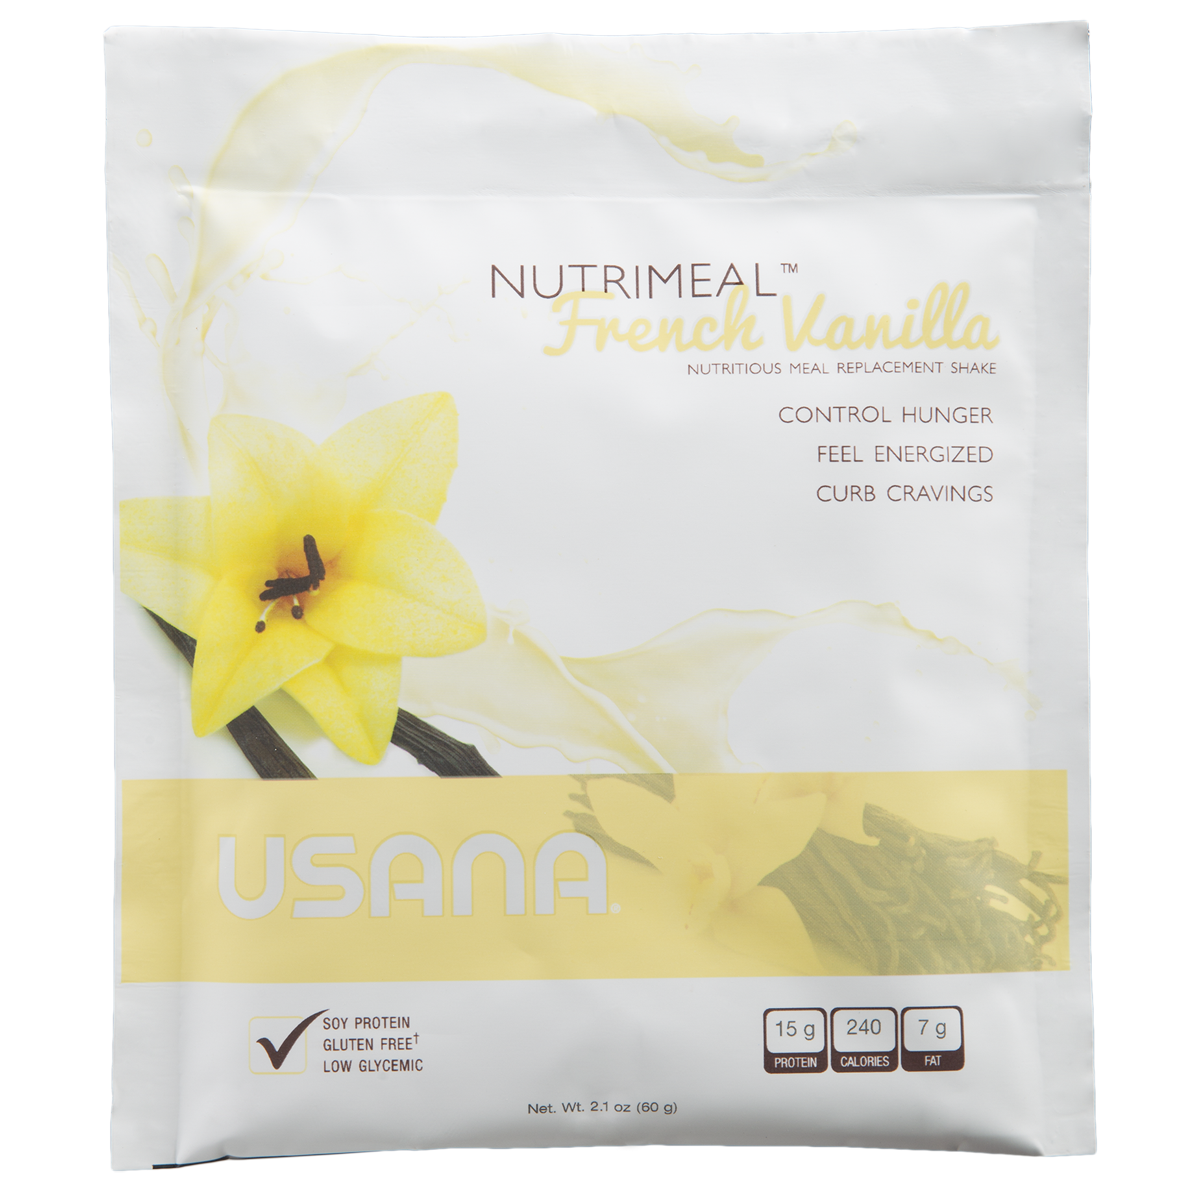 USANA - Nutrimeal Single - French Vanilla Protein Drink Mix